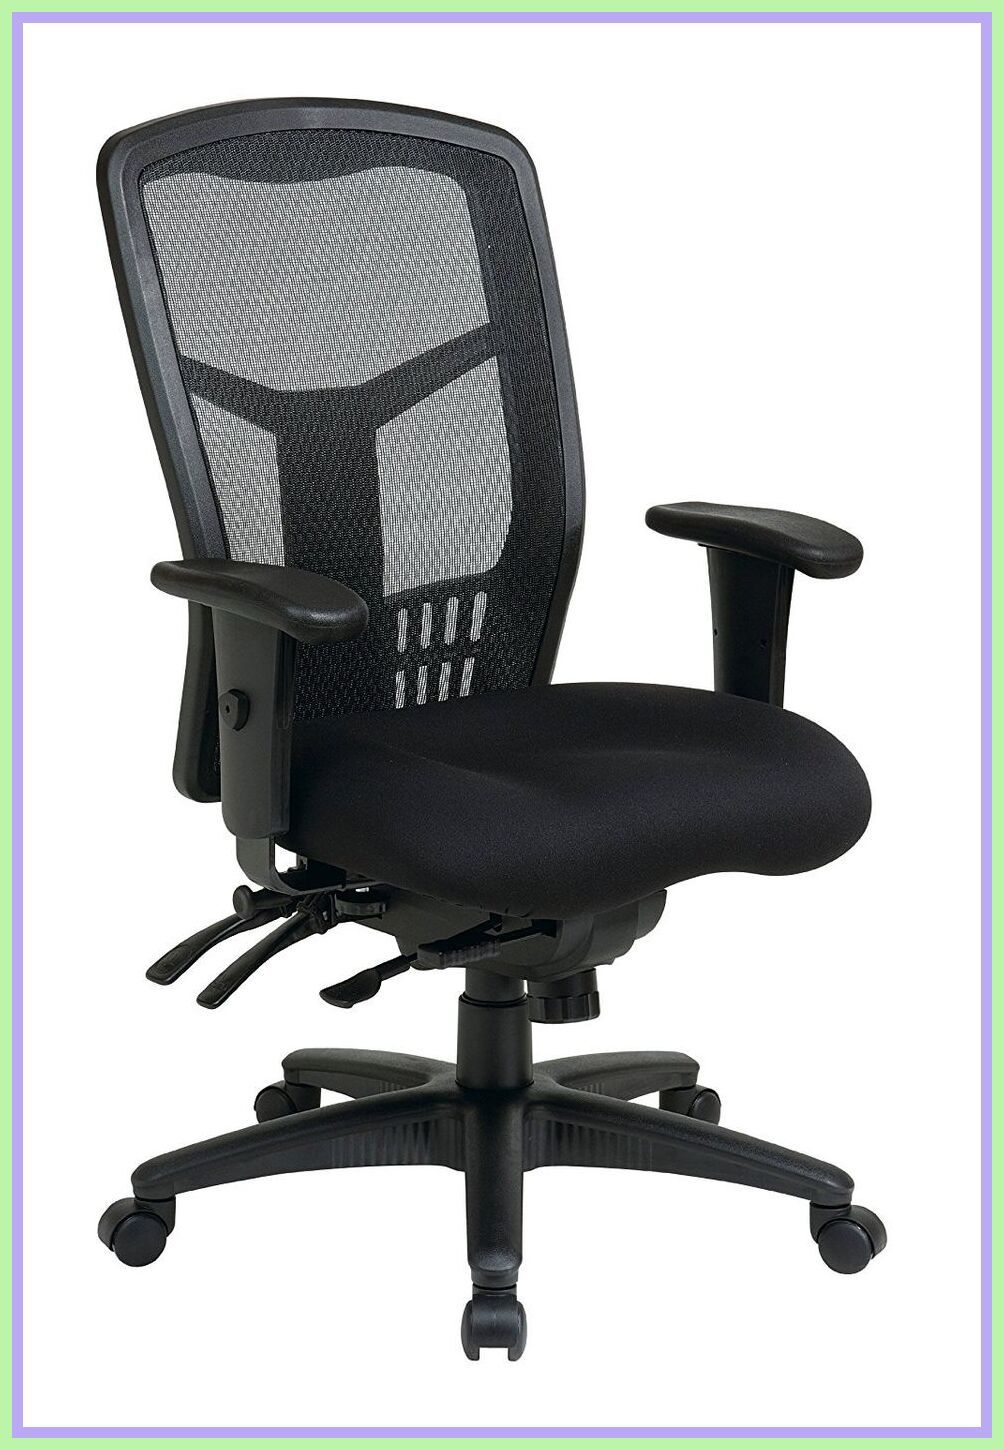 94 Reference Of Comfy Desk Chair No Wheels In 2020 Best Ergonomic Office Chair Office Chair Desk Chair Comfy